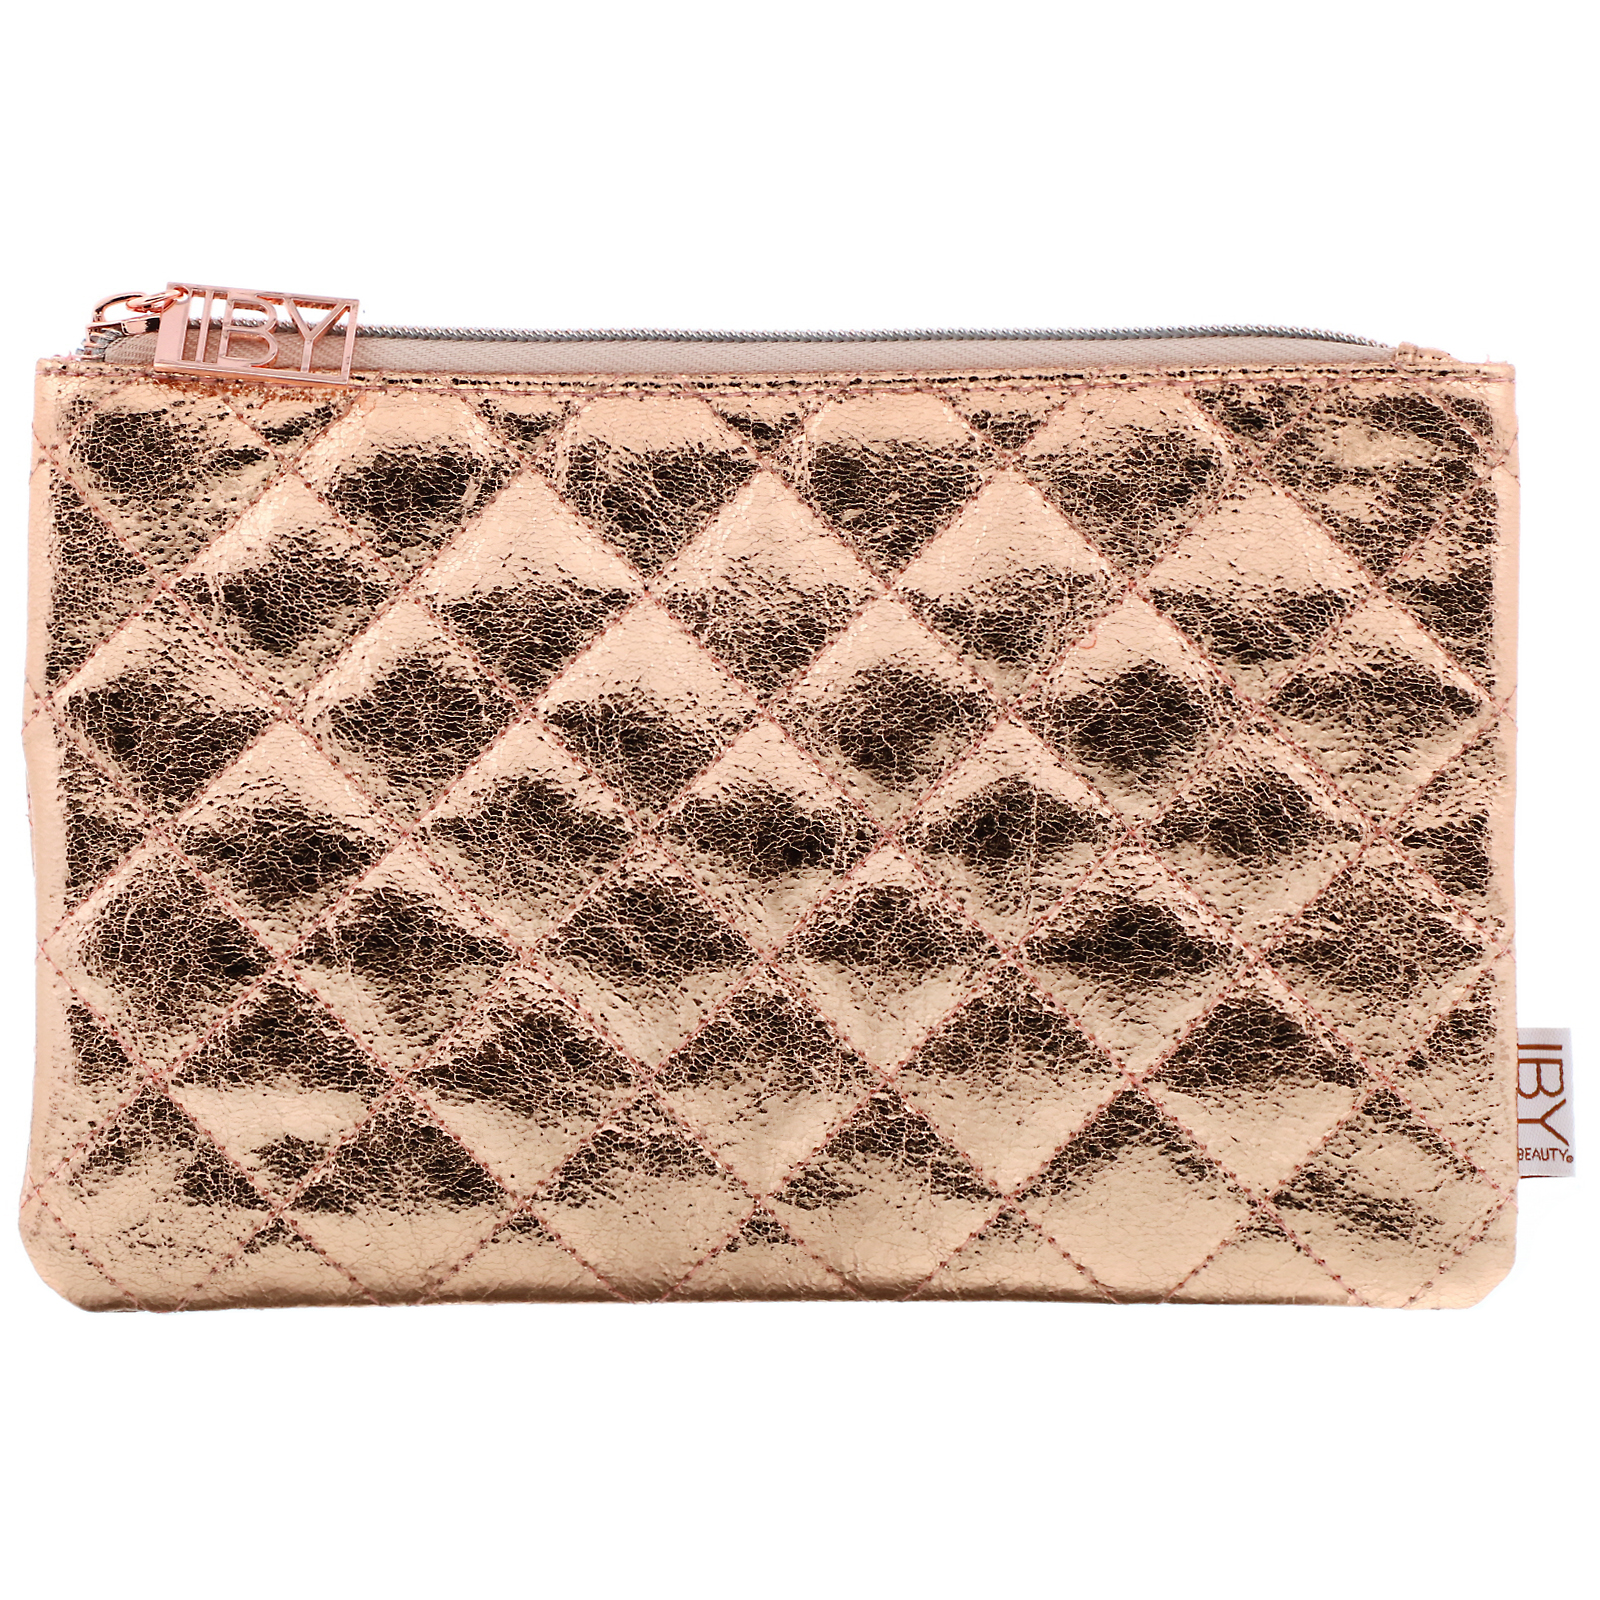 IBY Beauty, Rose Gold Quilted Makeup Bag, 1 Bag